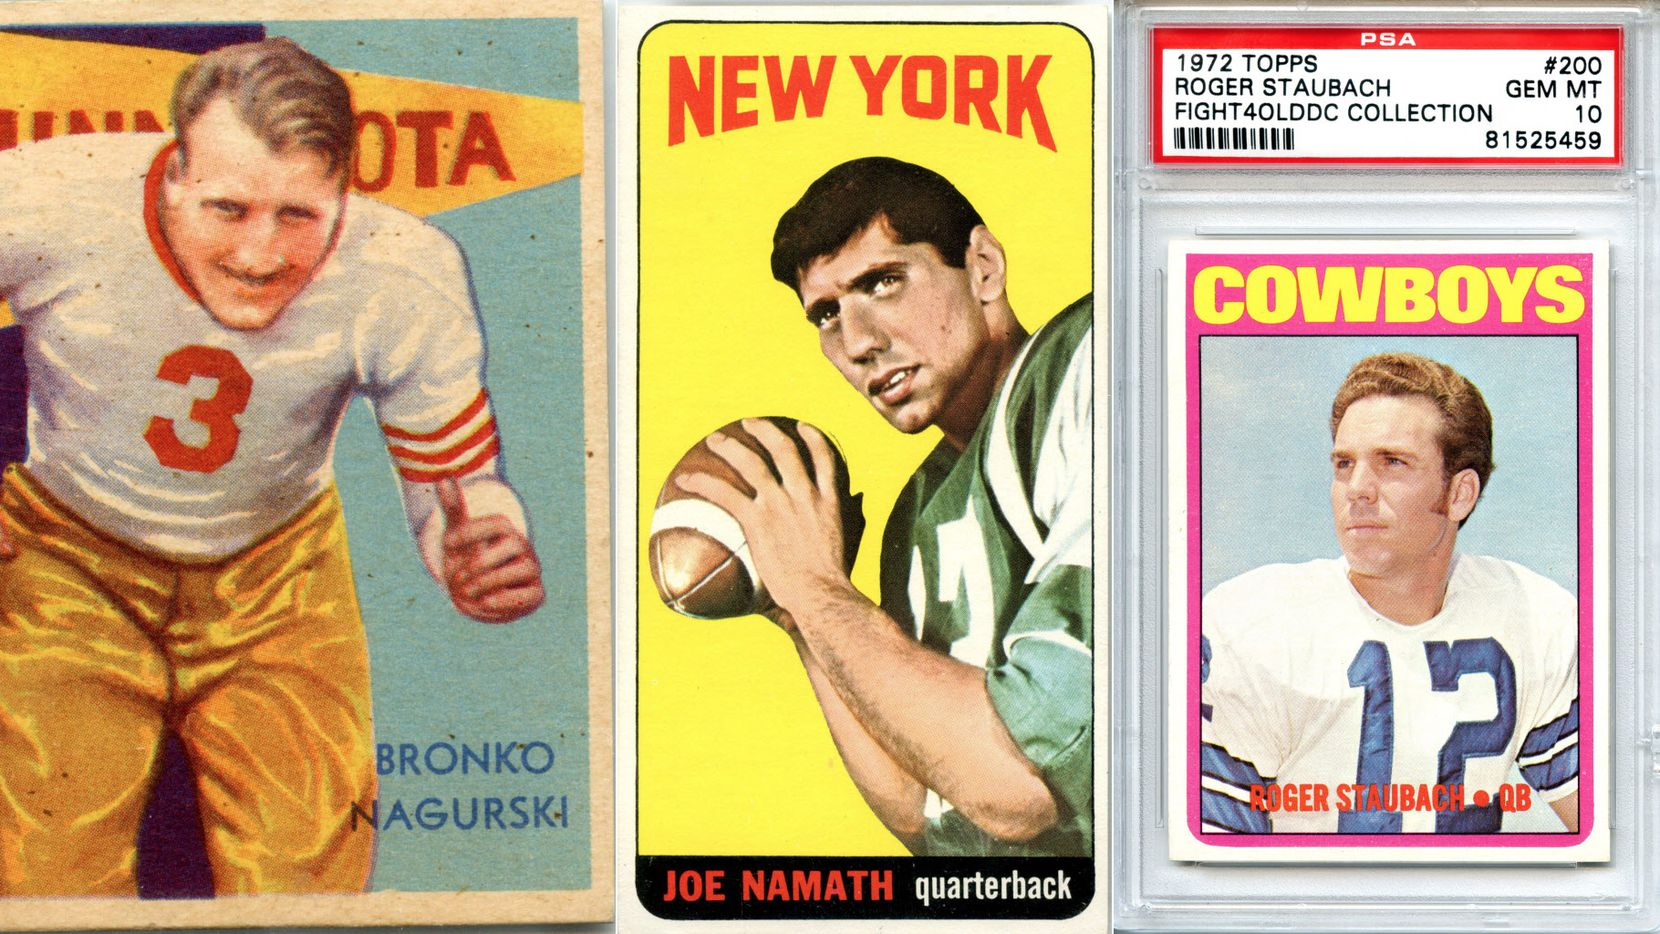 From left to right: Bronko Nagurski 1935 National Chicle, a 1965 Topps Joe Namath rookie card, a 1972 Roger Staubach Topps card.